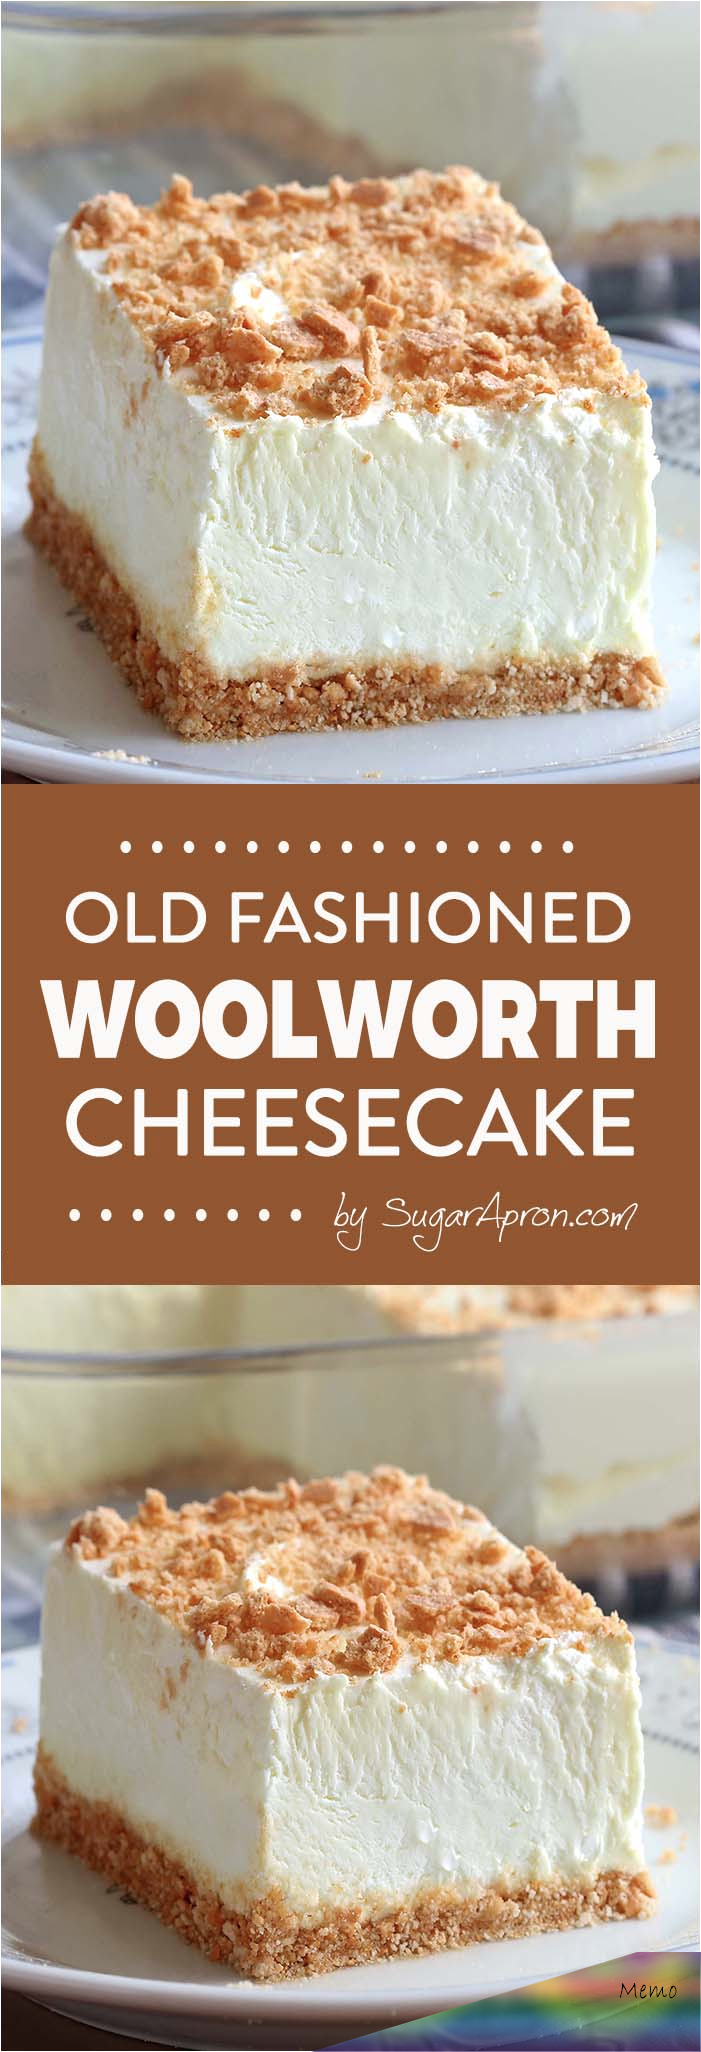 No Bake Woolworth Cheesecake is a classic, light and lemony dessert and will be the perfect addition to your Easter or Motherâ€s Day menu!